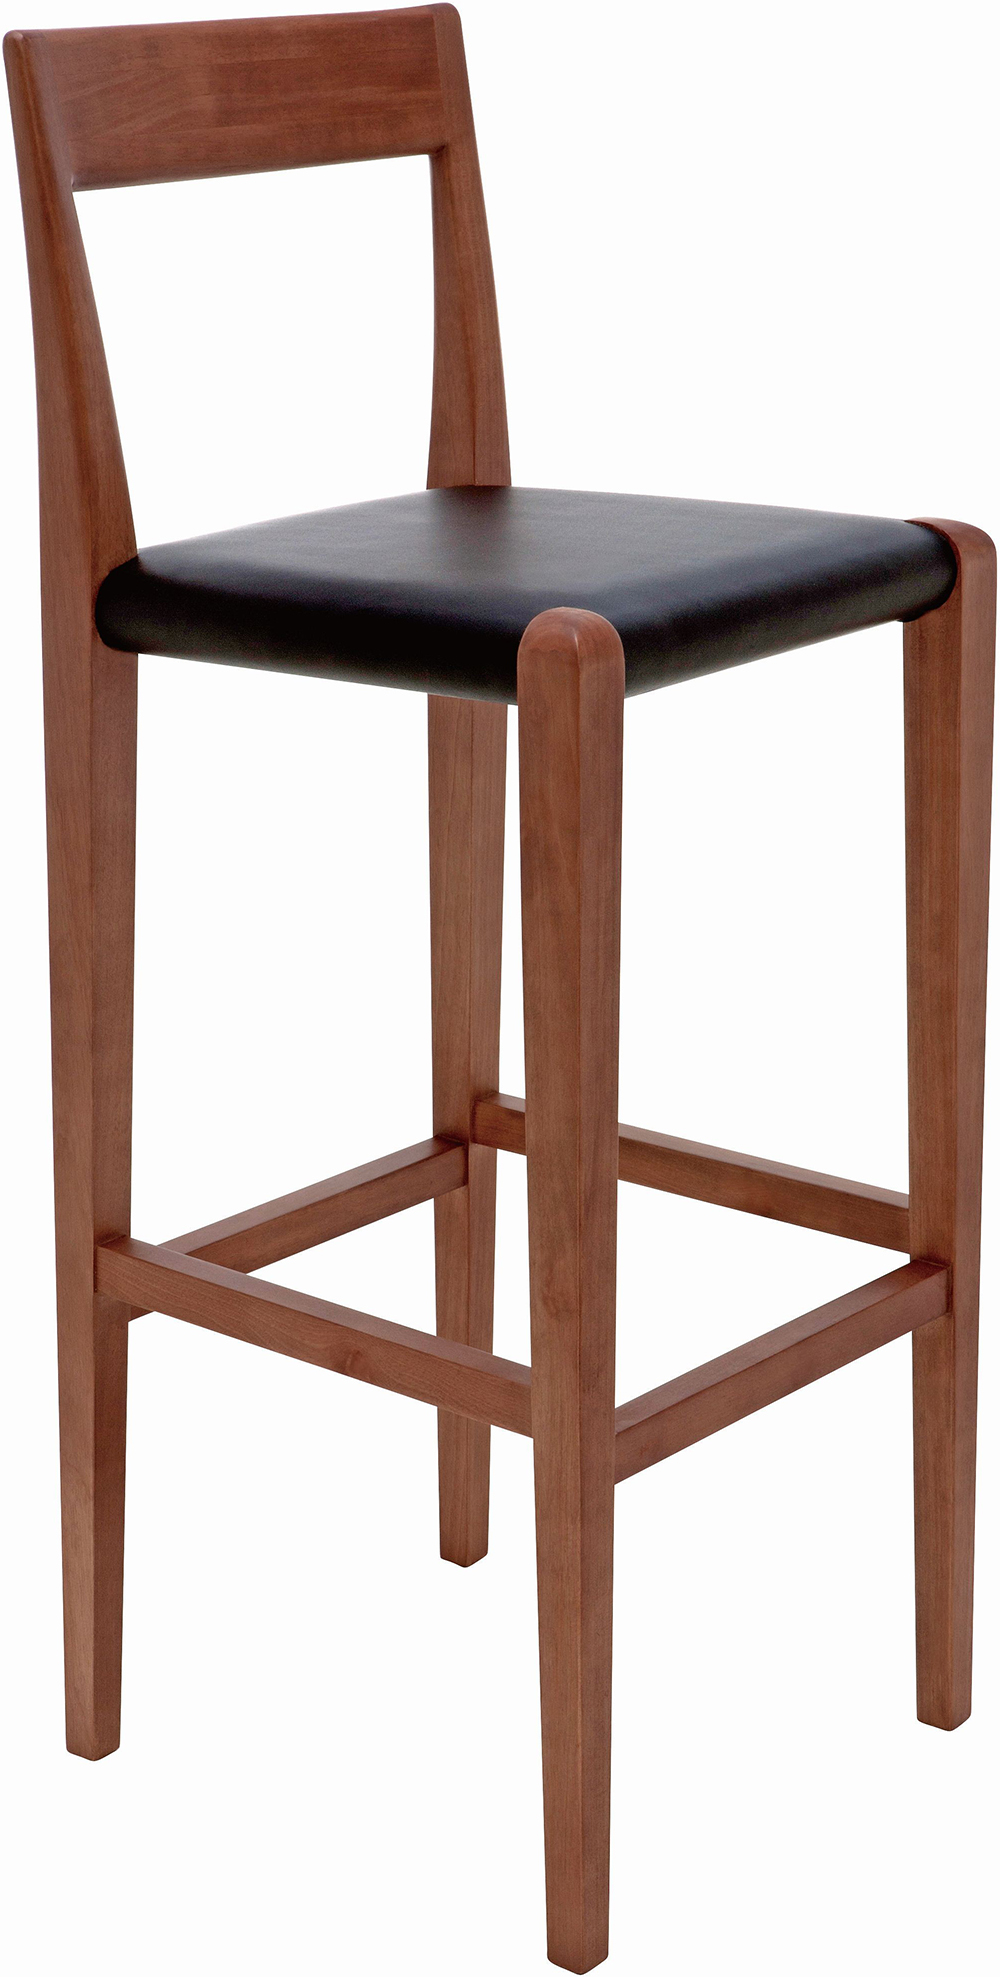 Nuevo Living Ameri Bar Stool Birch Wood With Walnut Stain : ameri bar stool by nuevo living from stores.advancedinteriordesigns.com size 1000 x 1977 jpeg 628kB